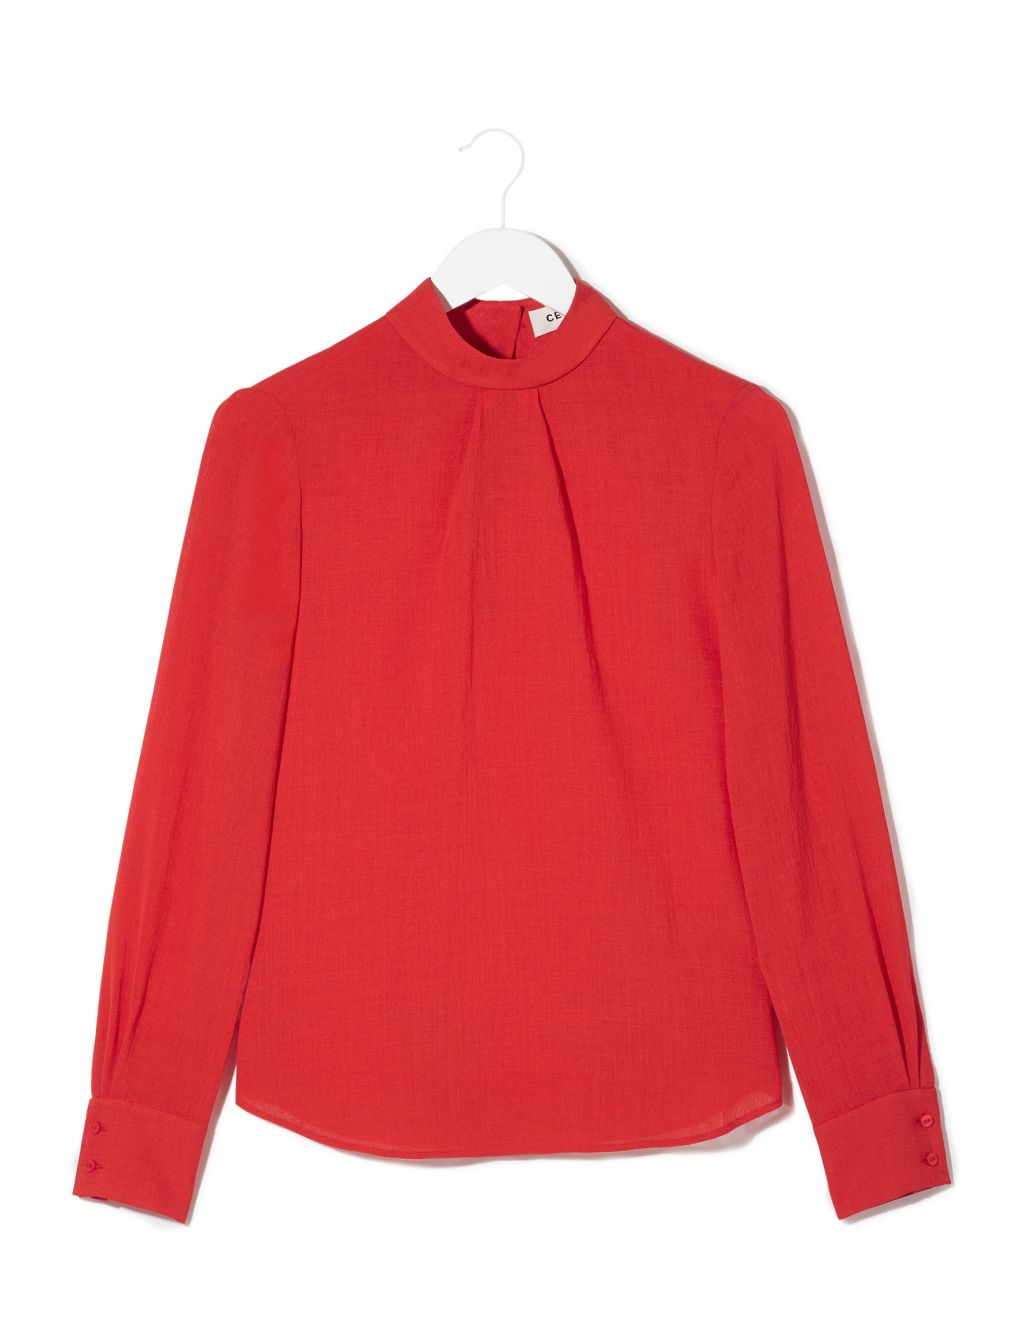 Red Blouse tailored long sleeved funnel neck blouse - red HALOFNL